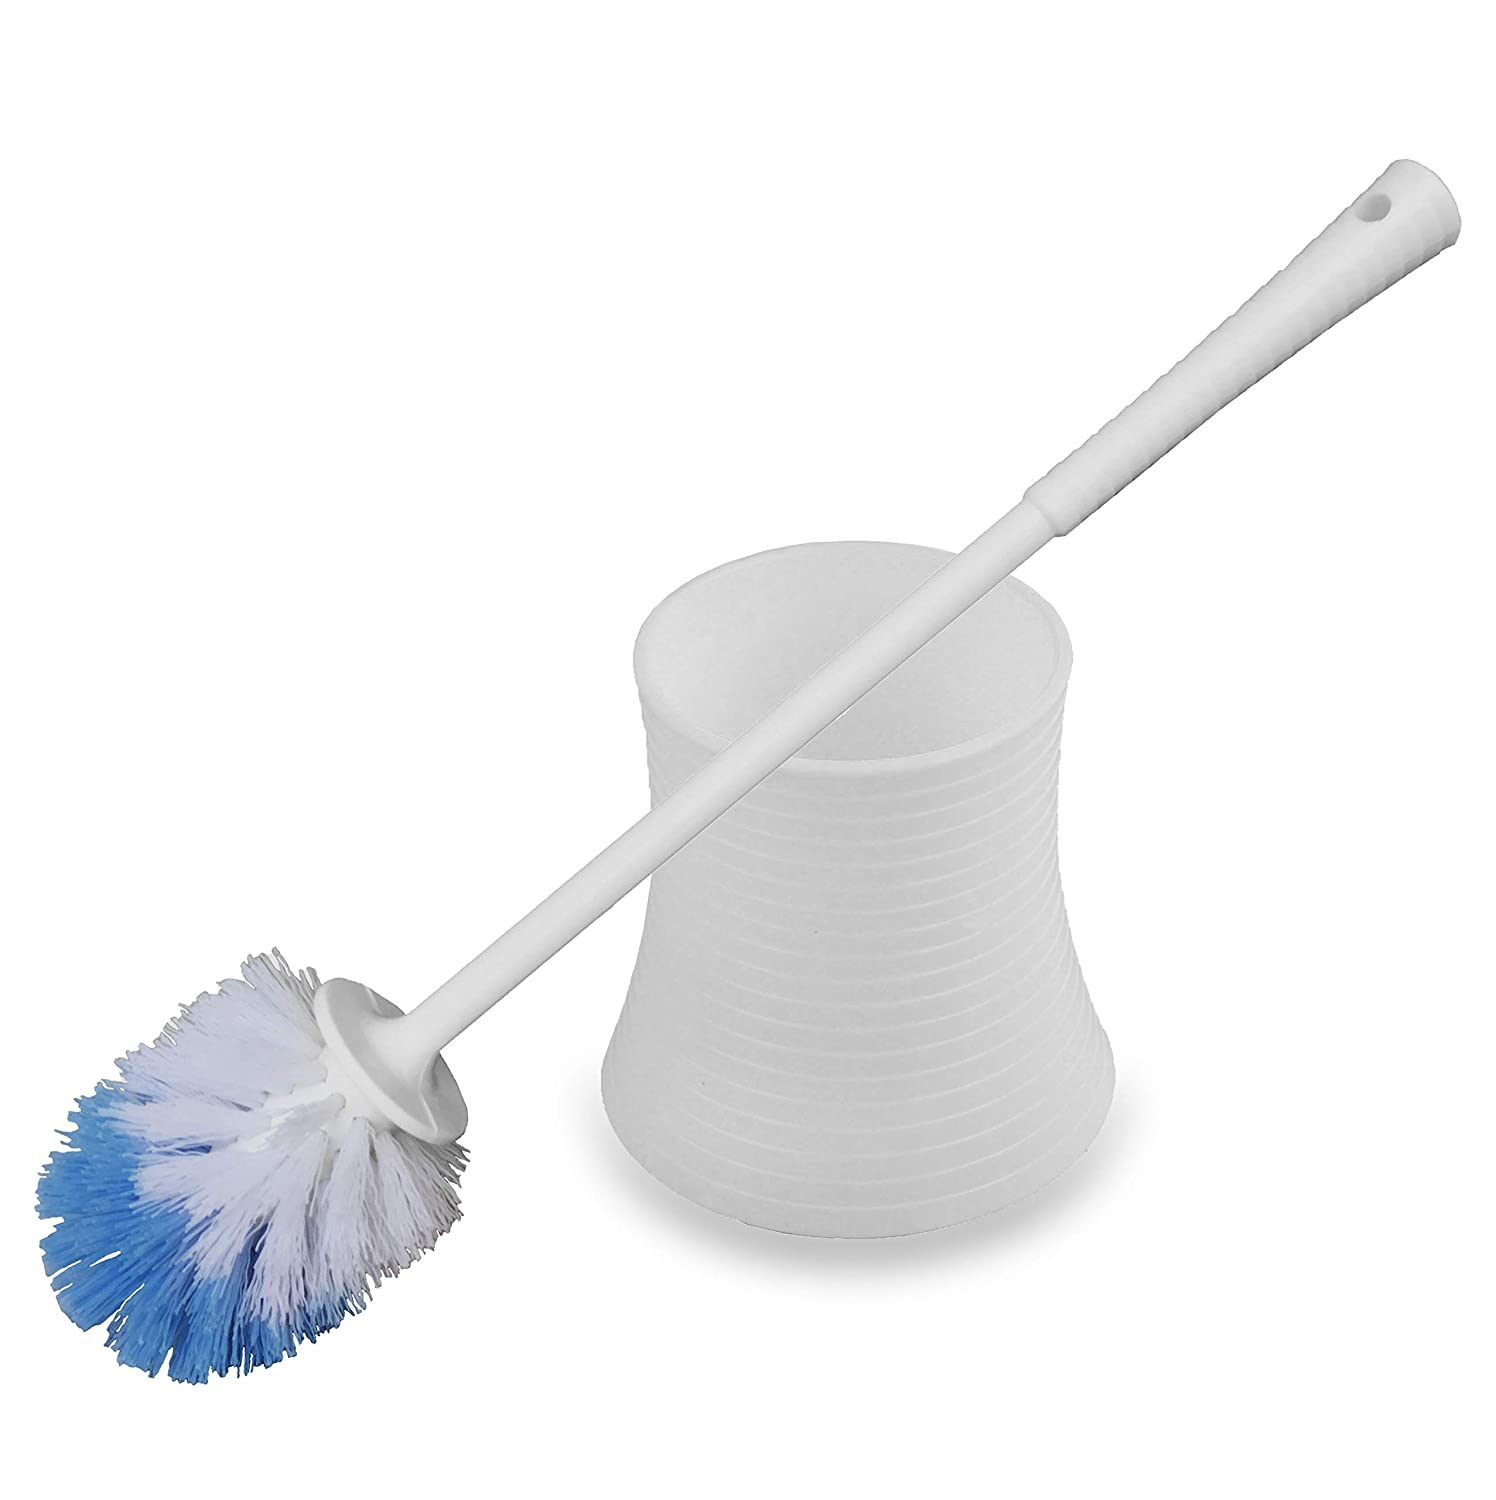 Toilet Brush,Kinsky Strong Bristles Good Grips Hideaway Compact Long Brush and Enough Heavy Base for Bathroom Toilet